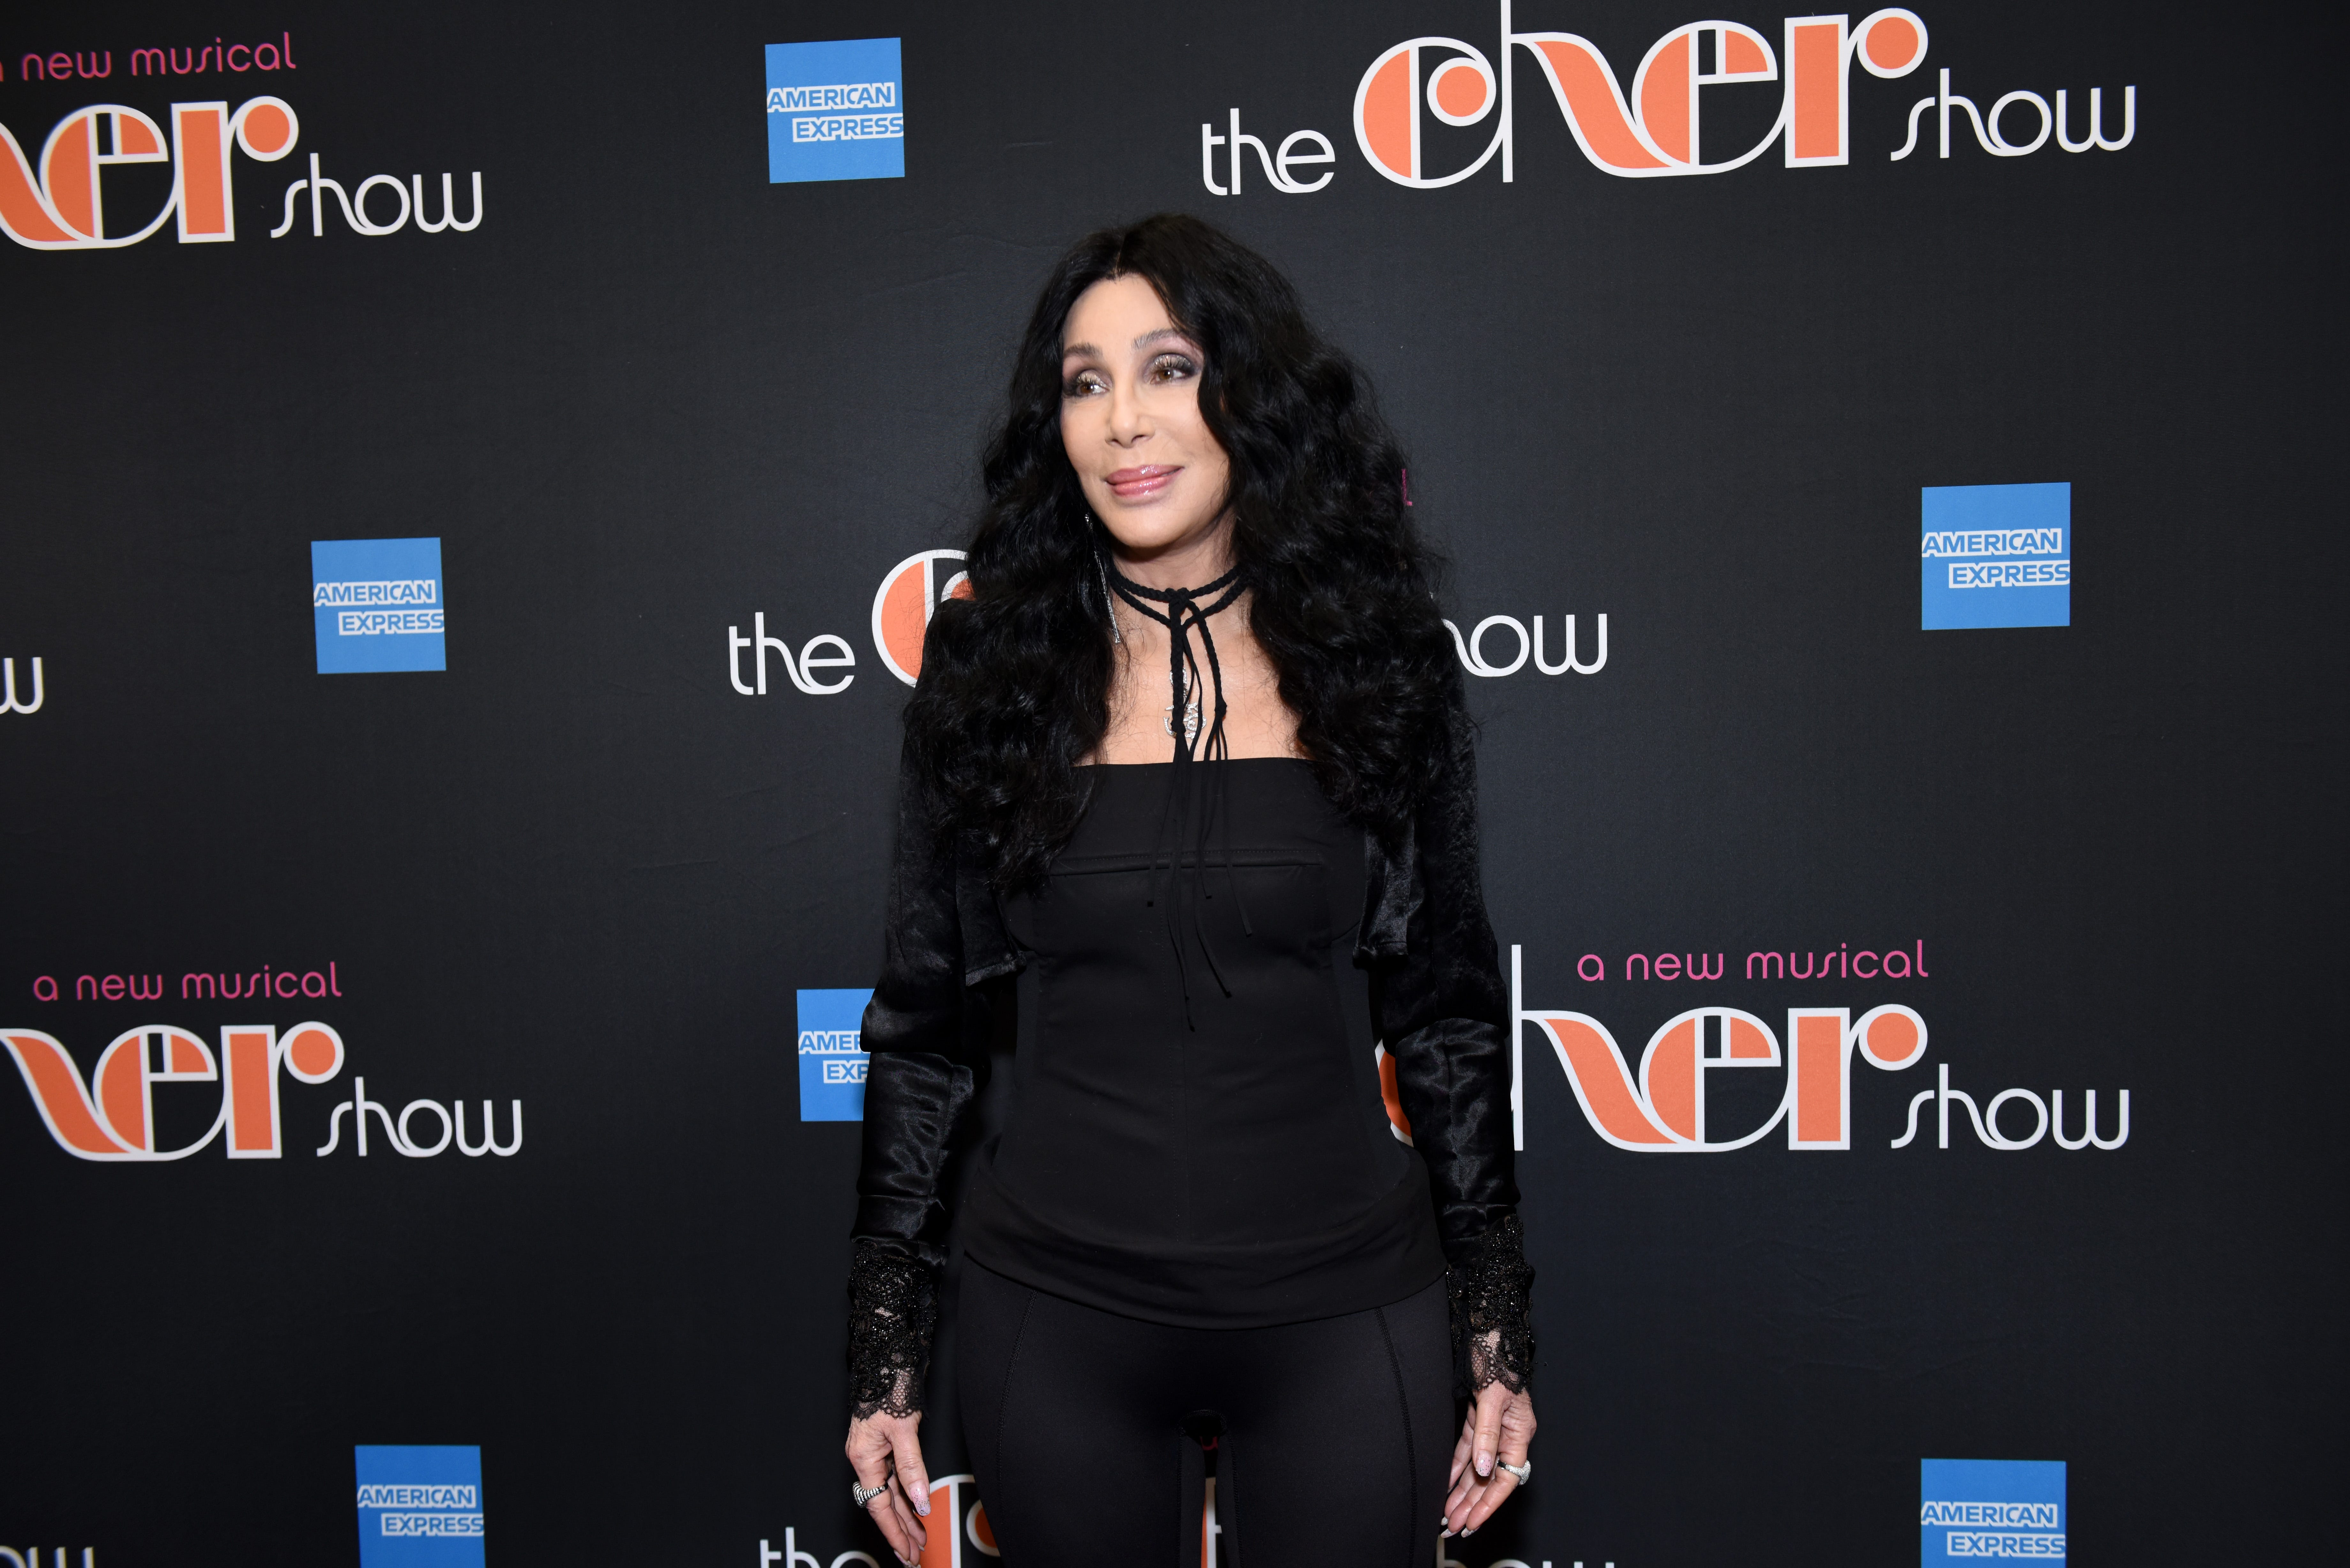 Cher on tour and M. Night Shyamalan's 'Glass' top the week in entertainment